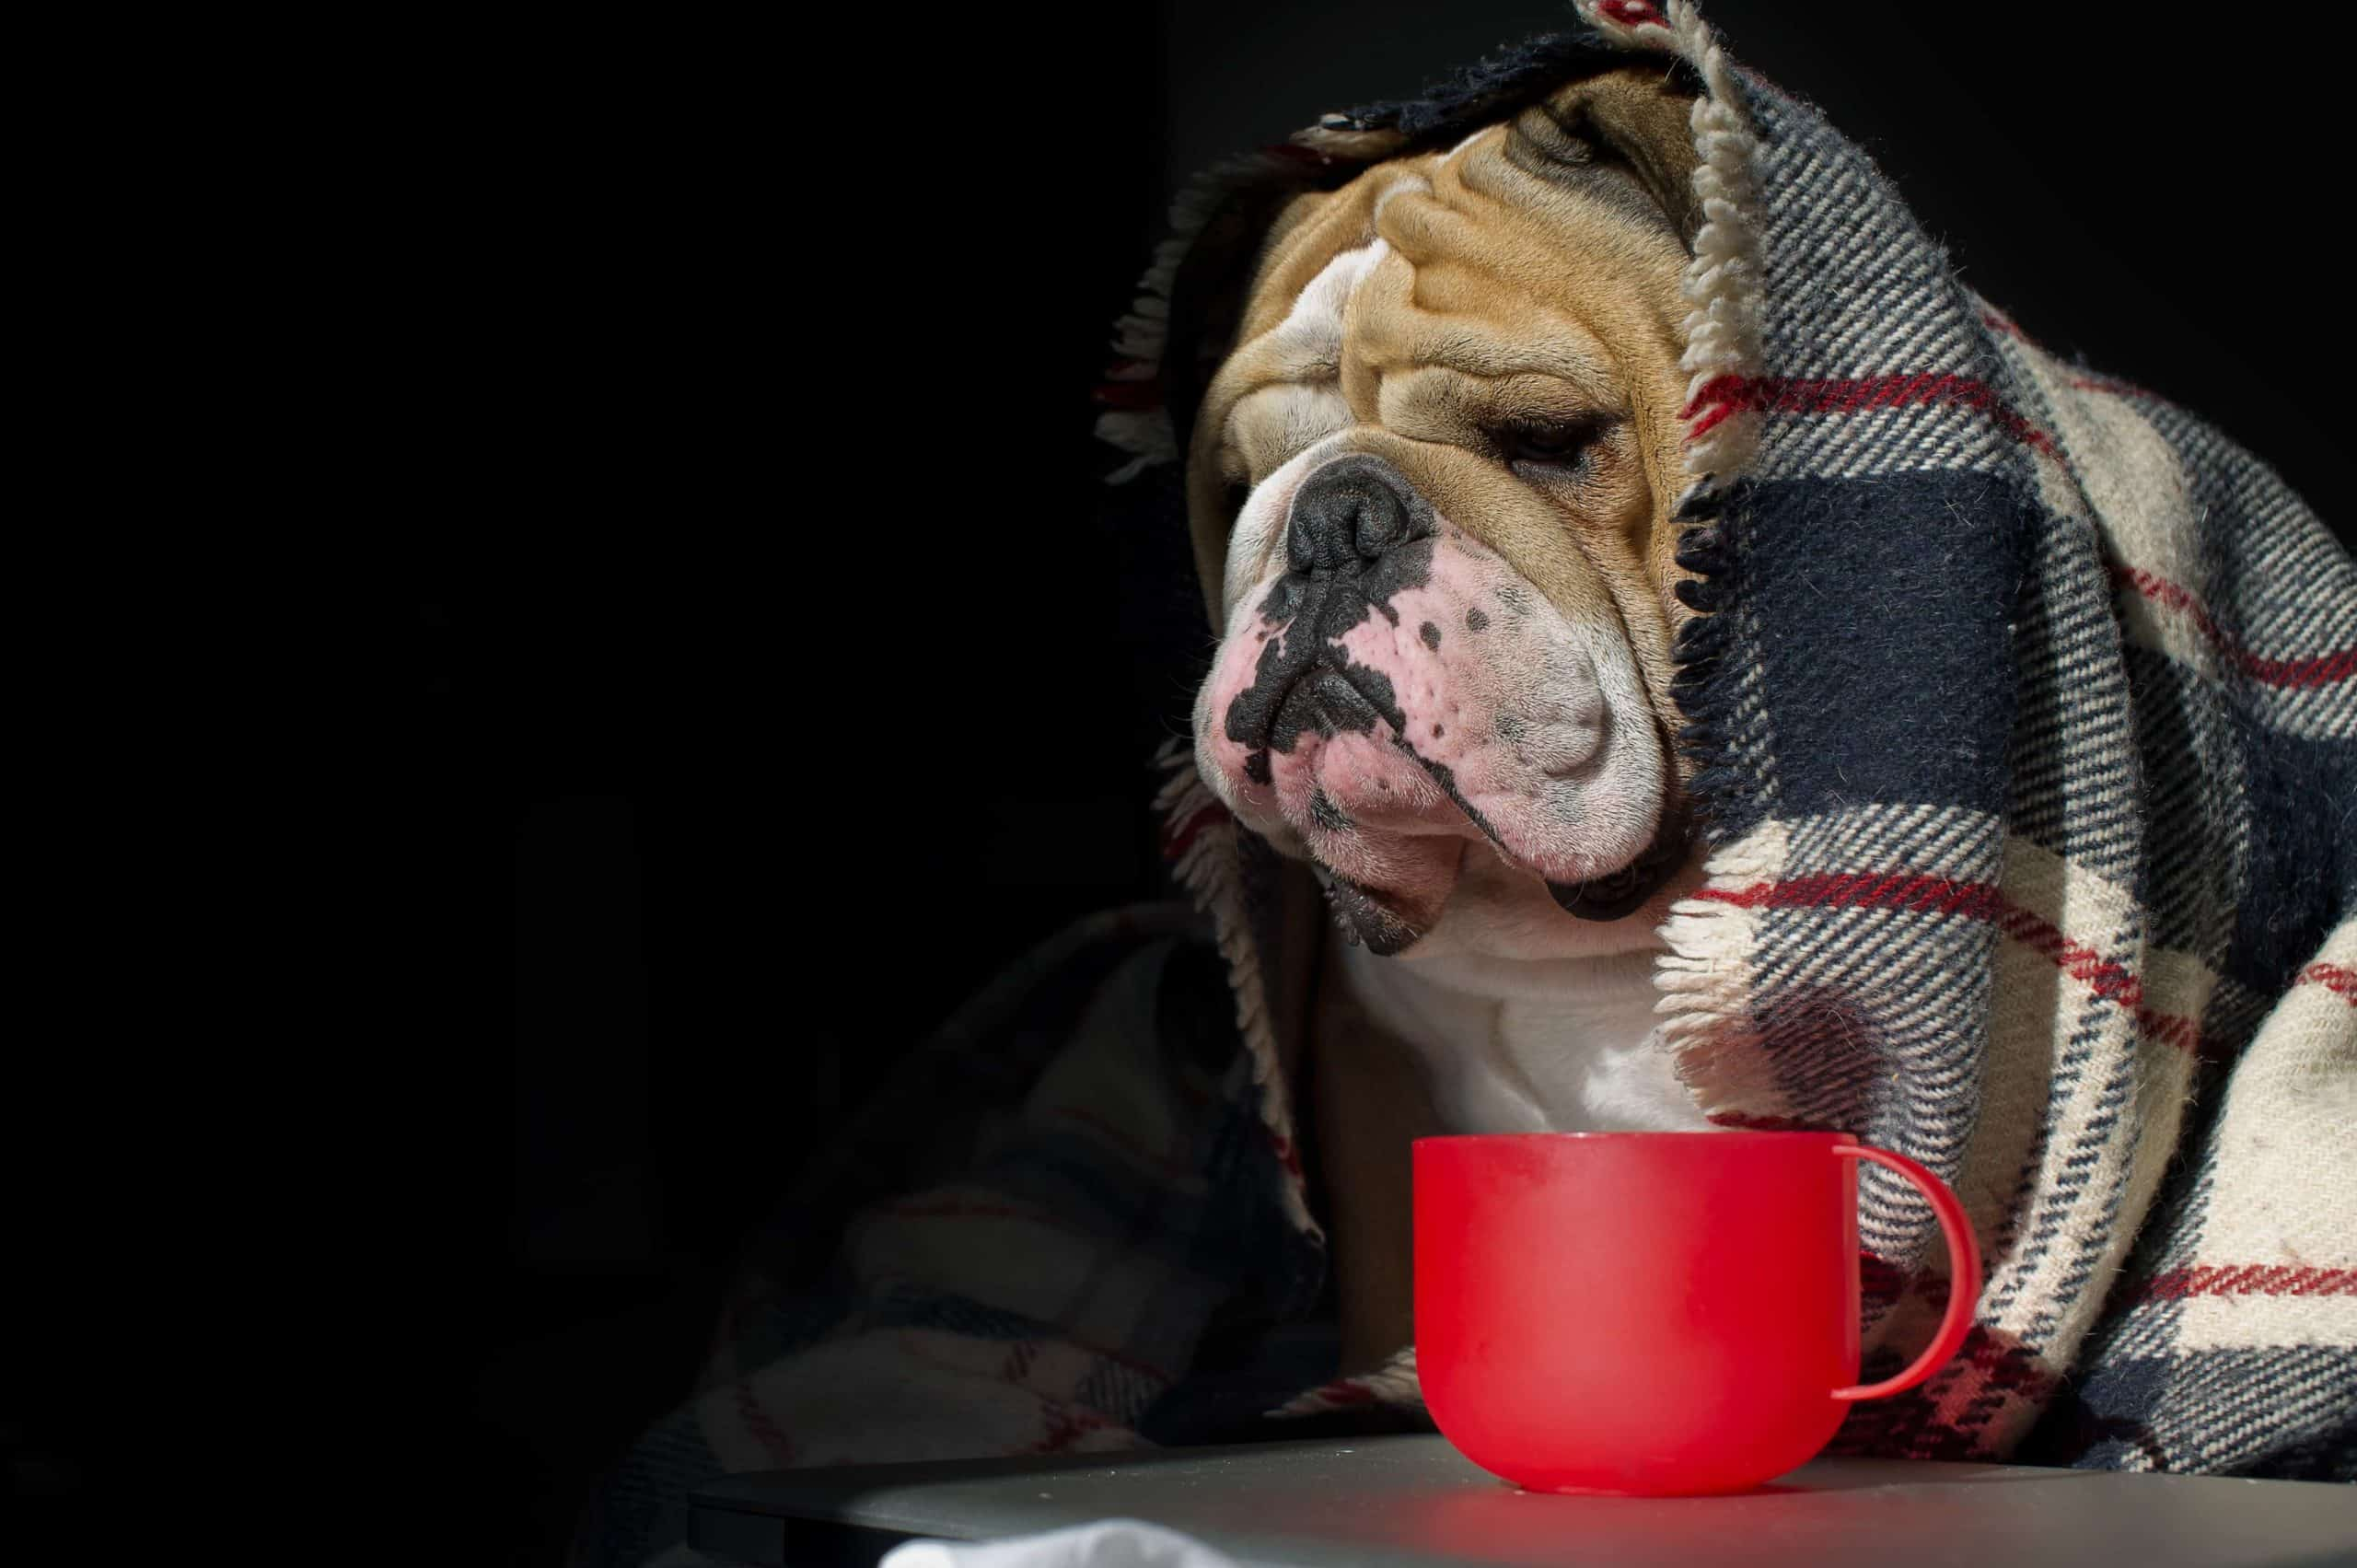 Sick bulldog wrapped in a blanket. Your dog's normal behavior depends on age, breed, and environment. Consult your veterinarian to understand abnormal behavior.